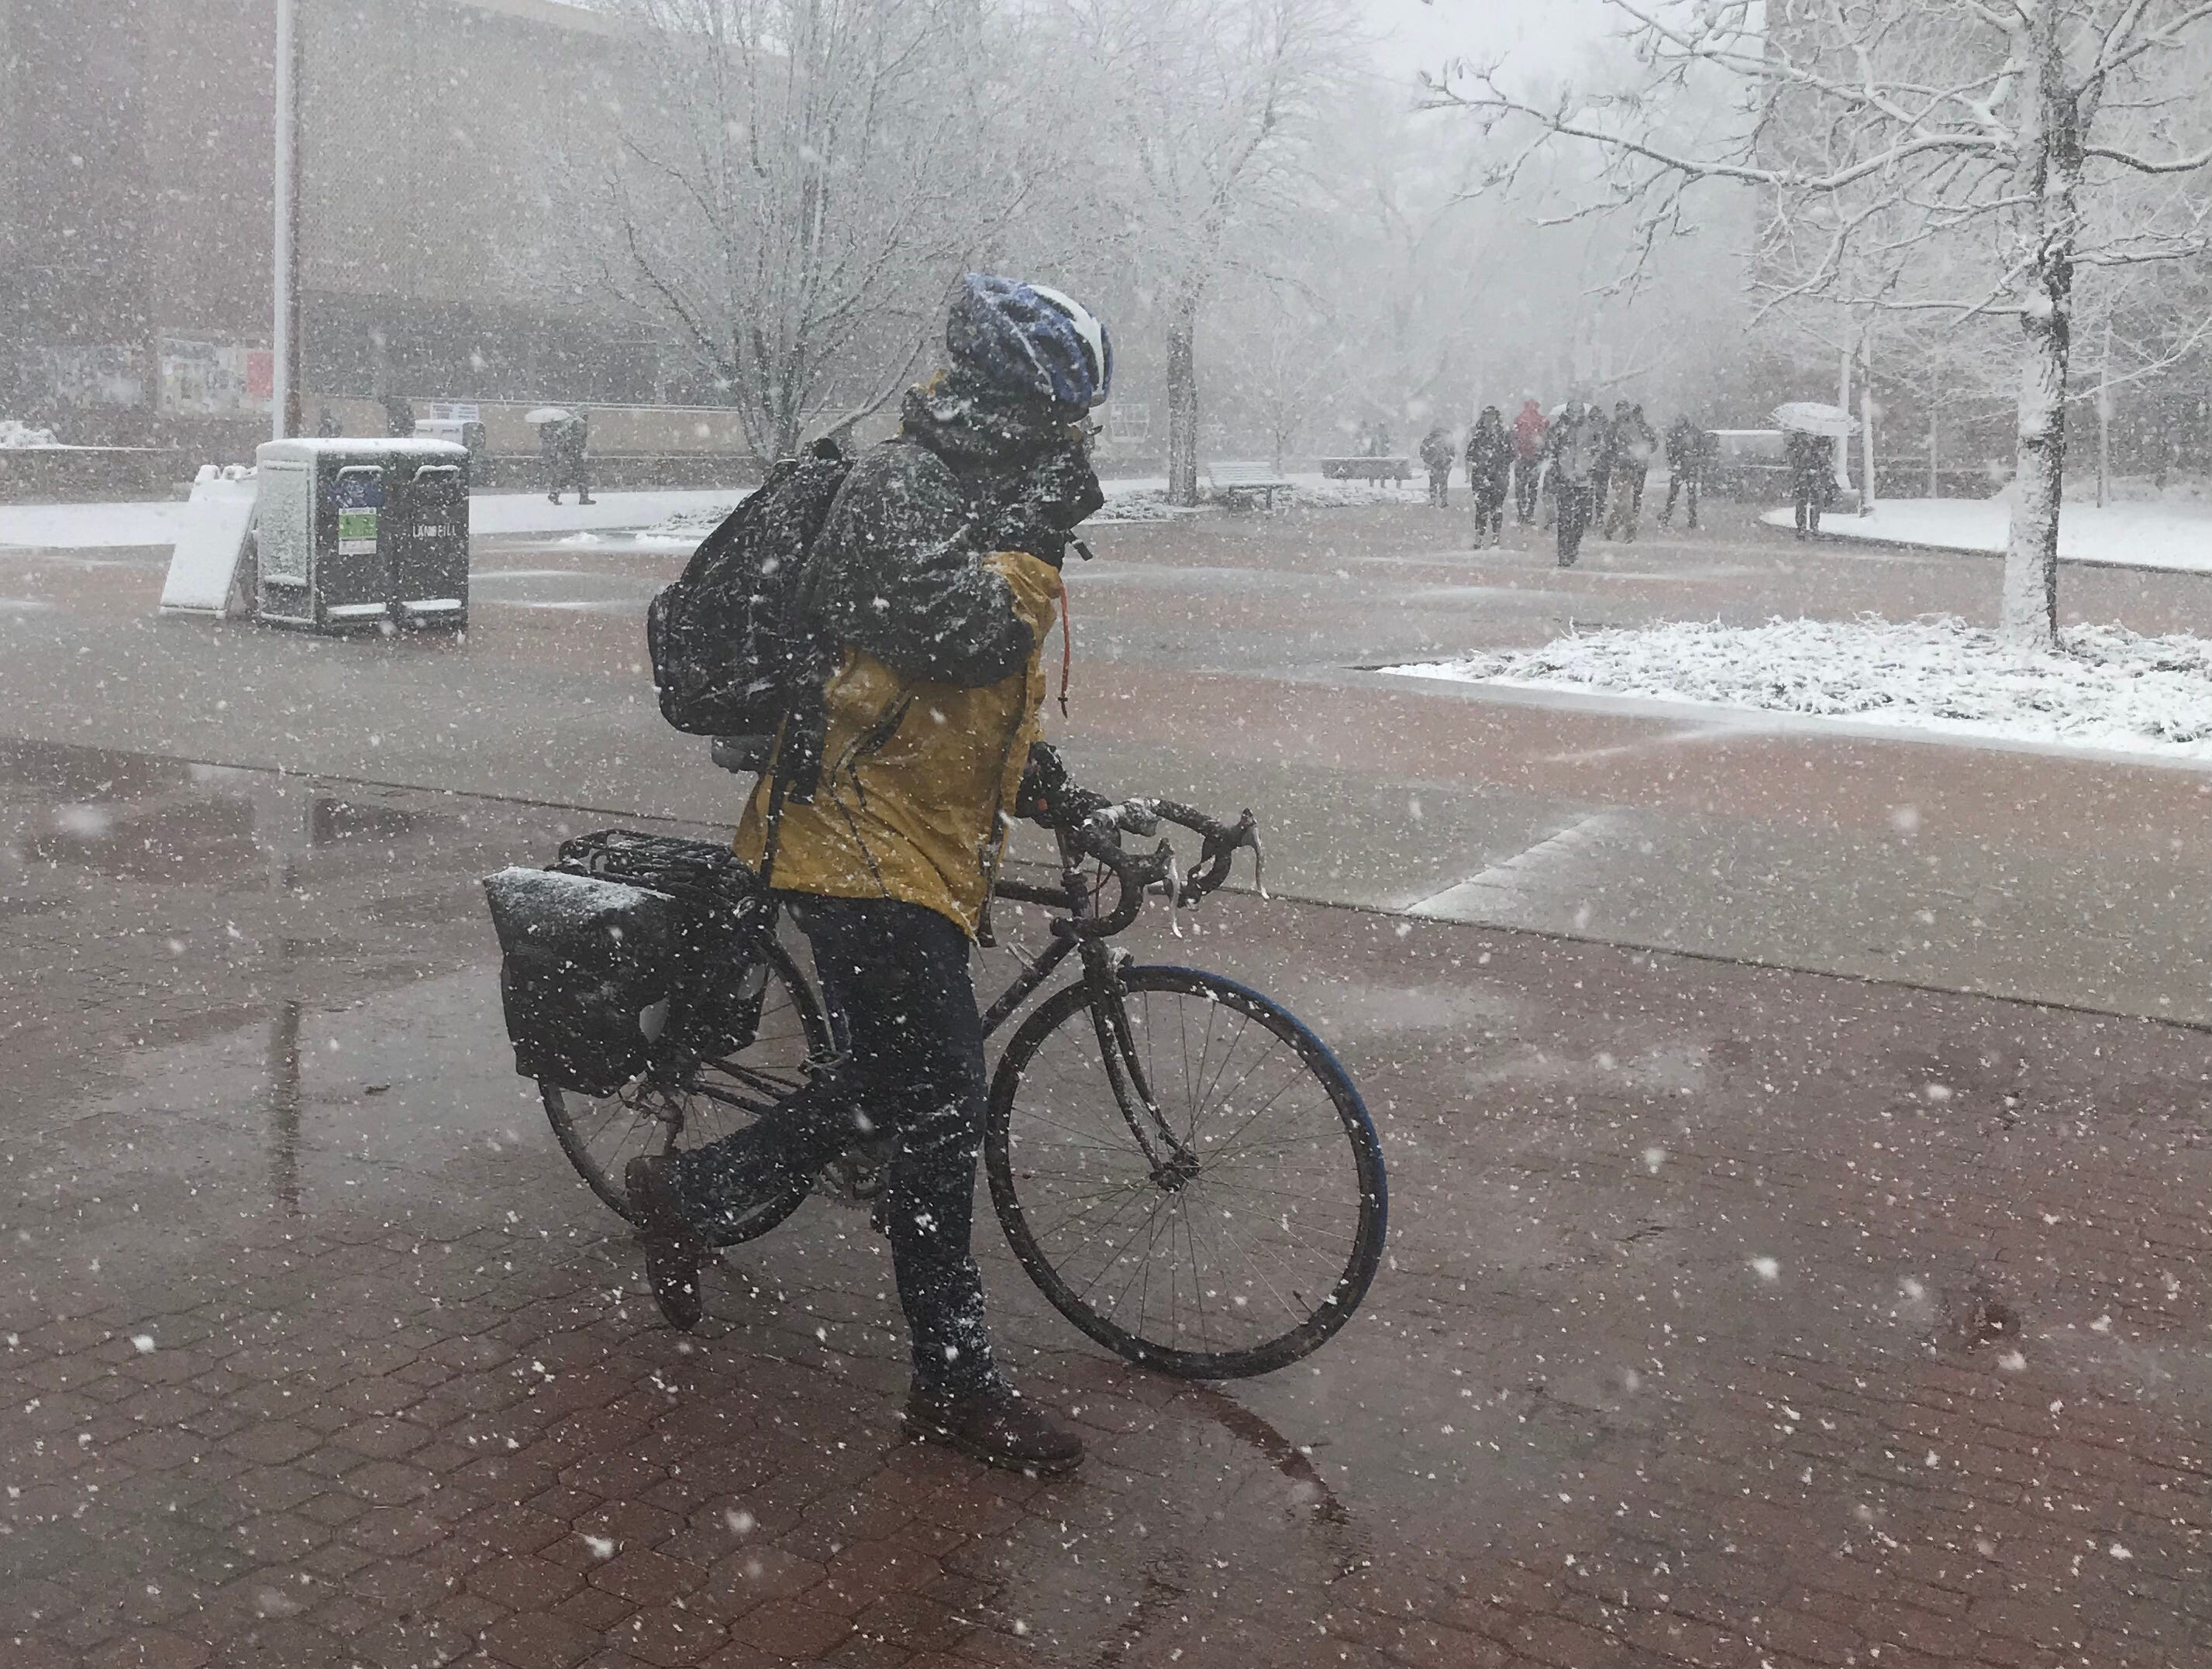 At Colorado State University: Scenes from the Northern Colorado snowstorm on April 10, 2019.